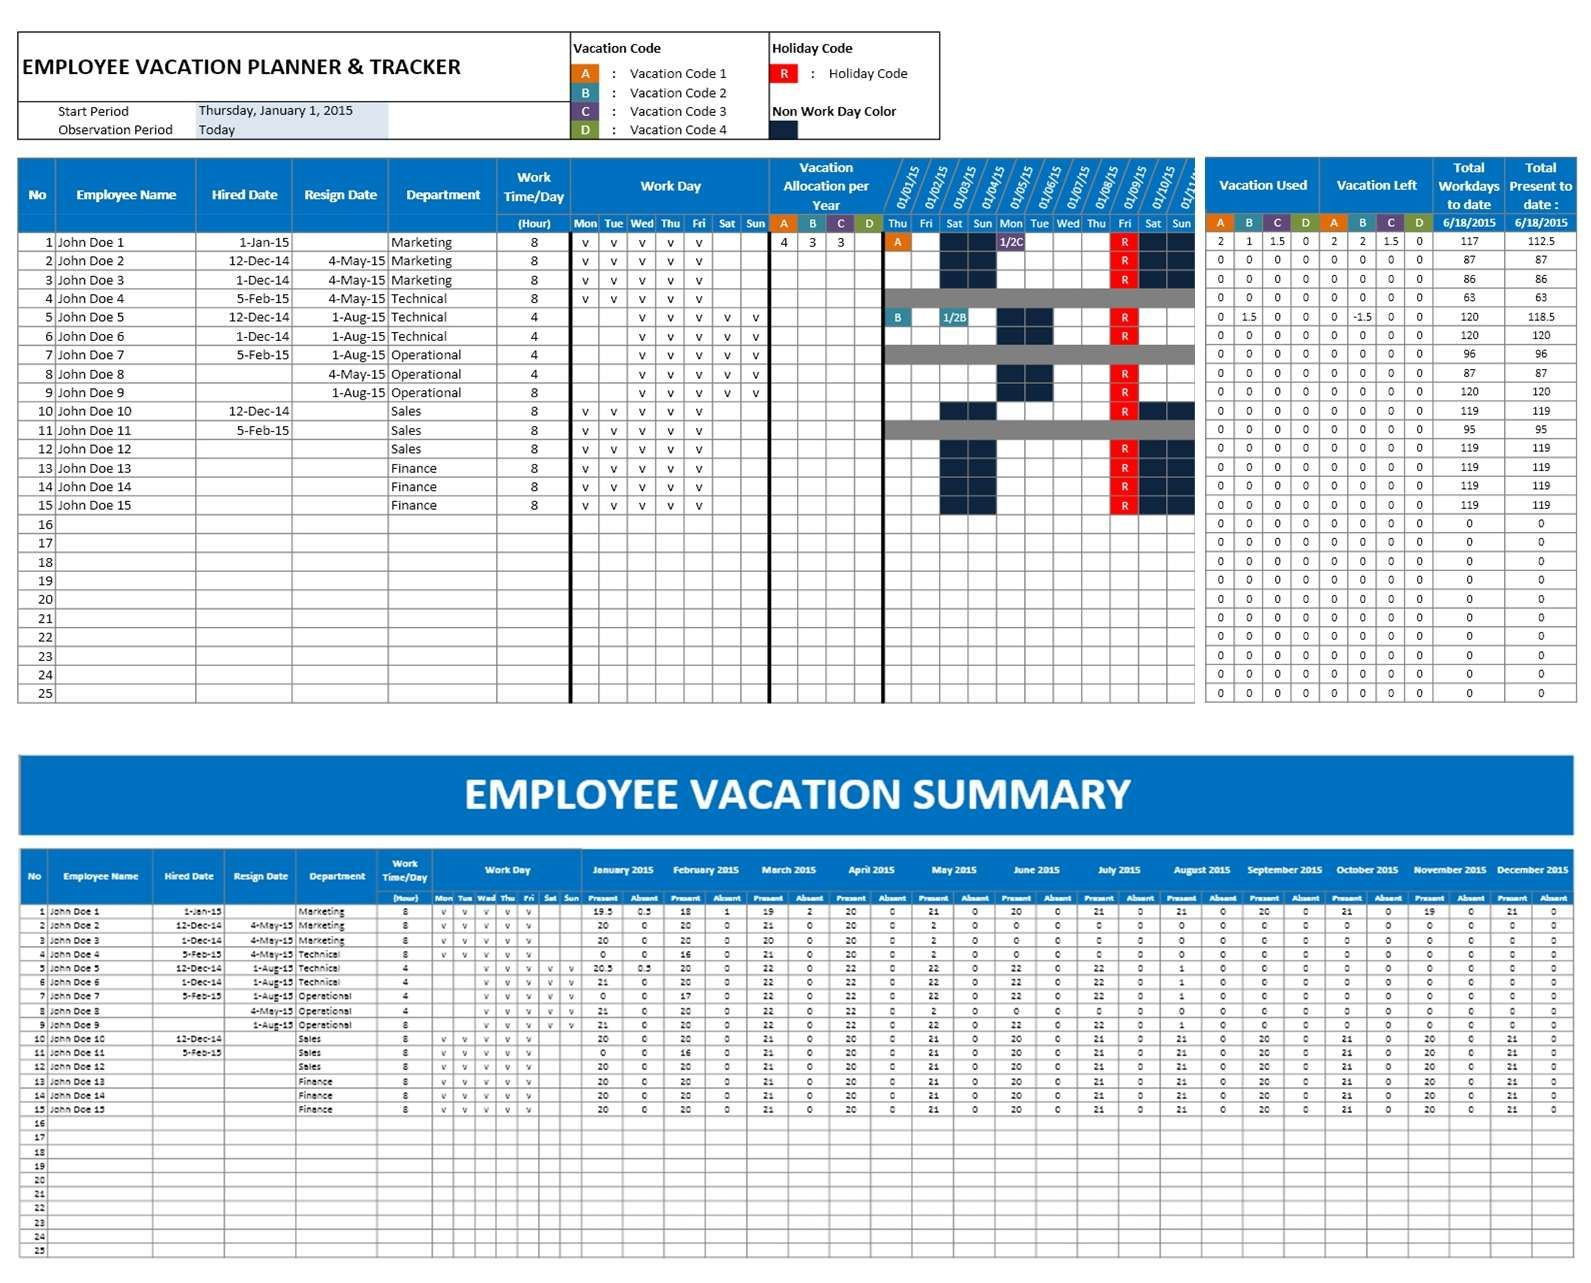 Employee Attendance Calendar Excel Template - Google Search | Mgmt with Calendar Template Excel Vacations